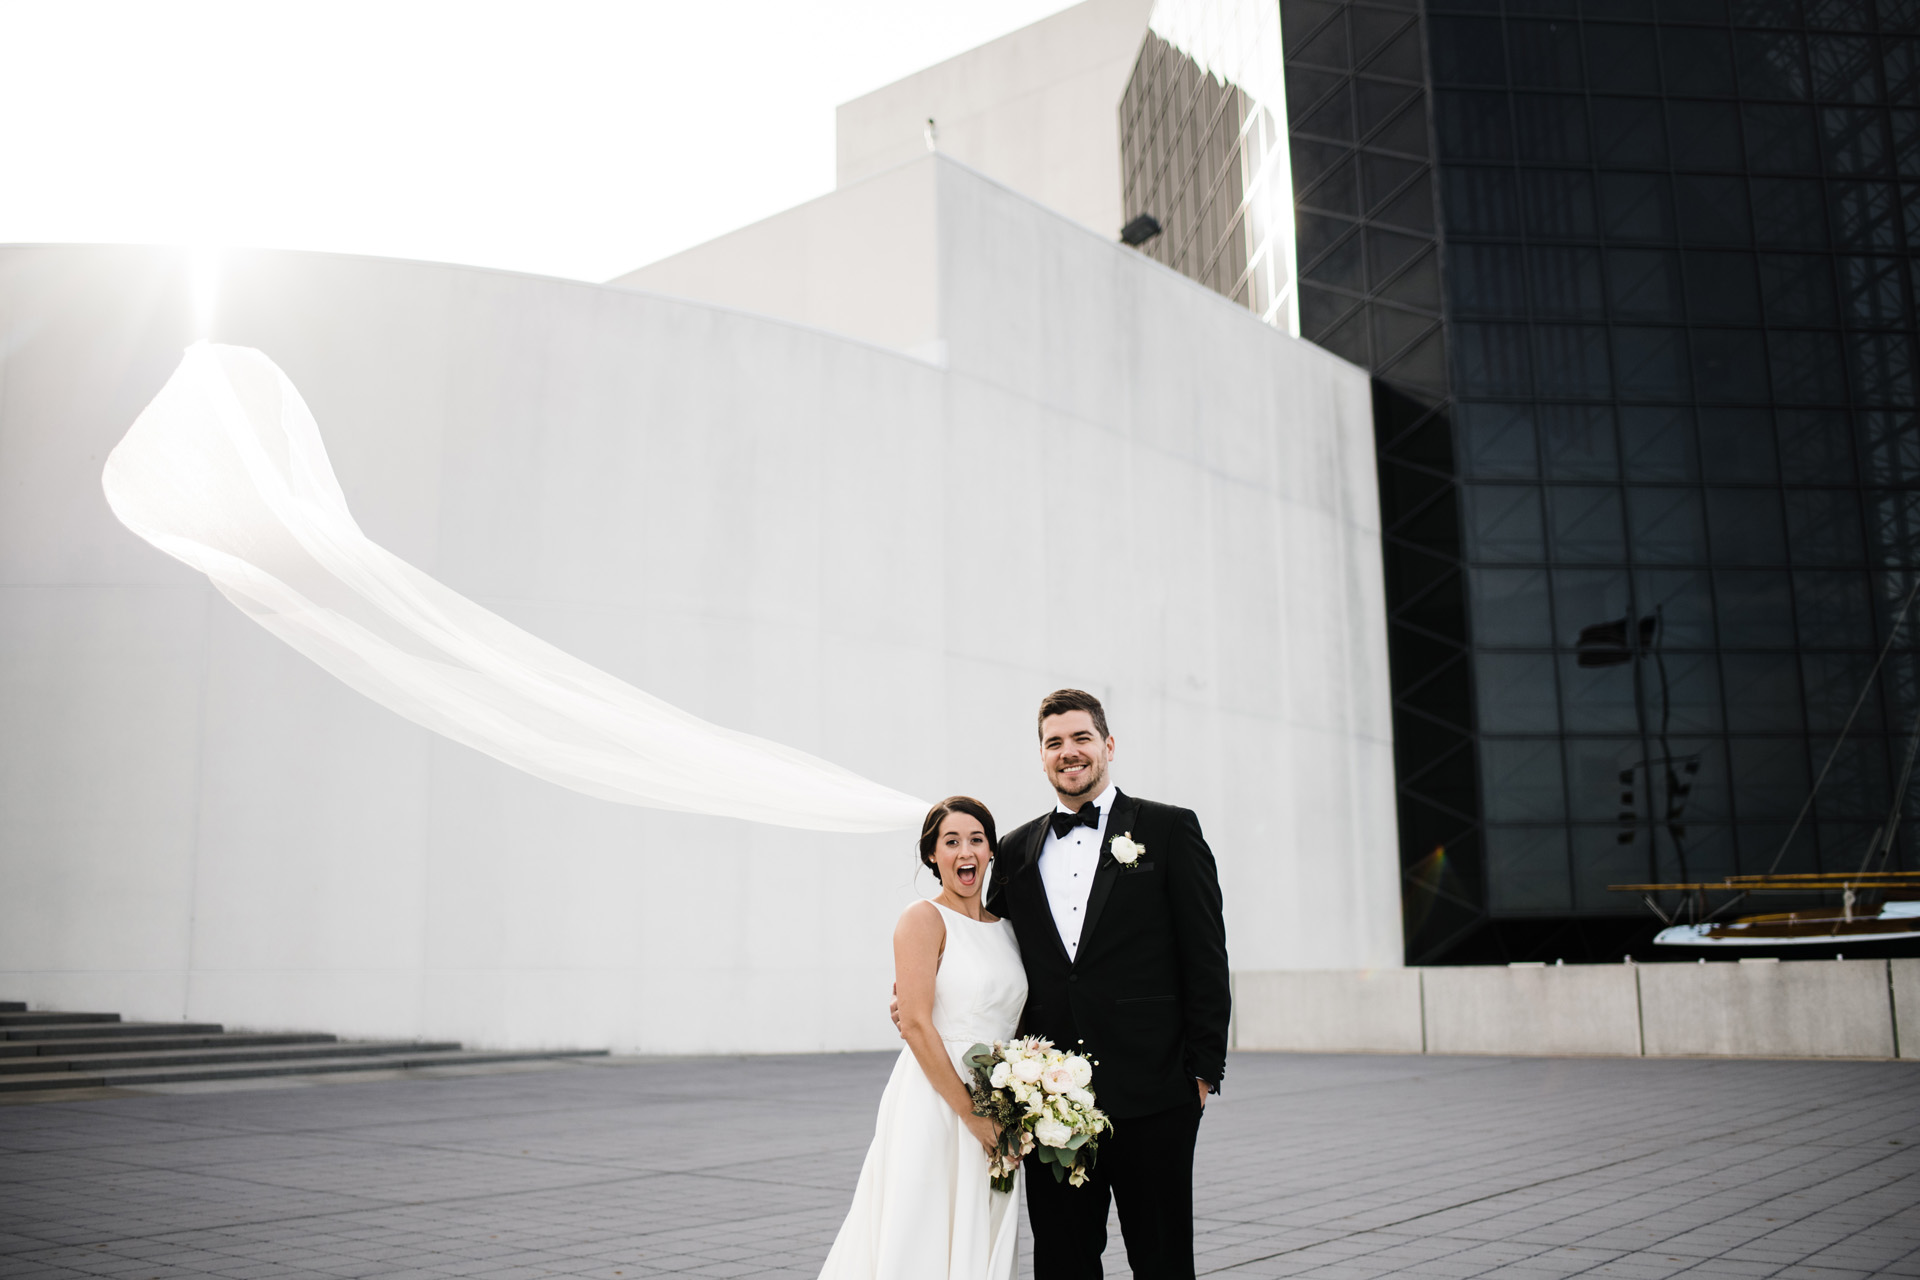 jfk-museum-wedding-photographer-30